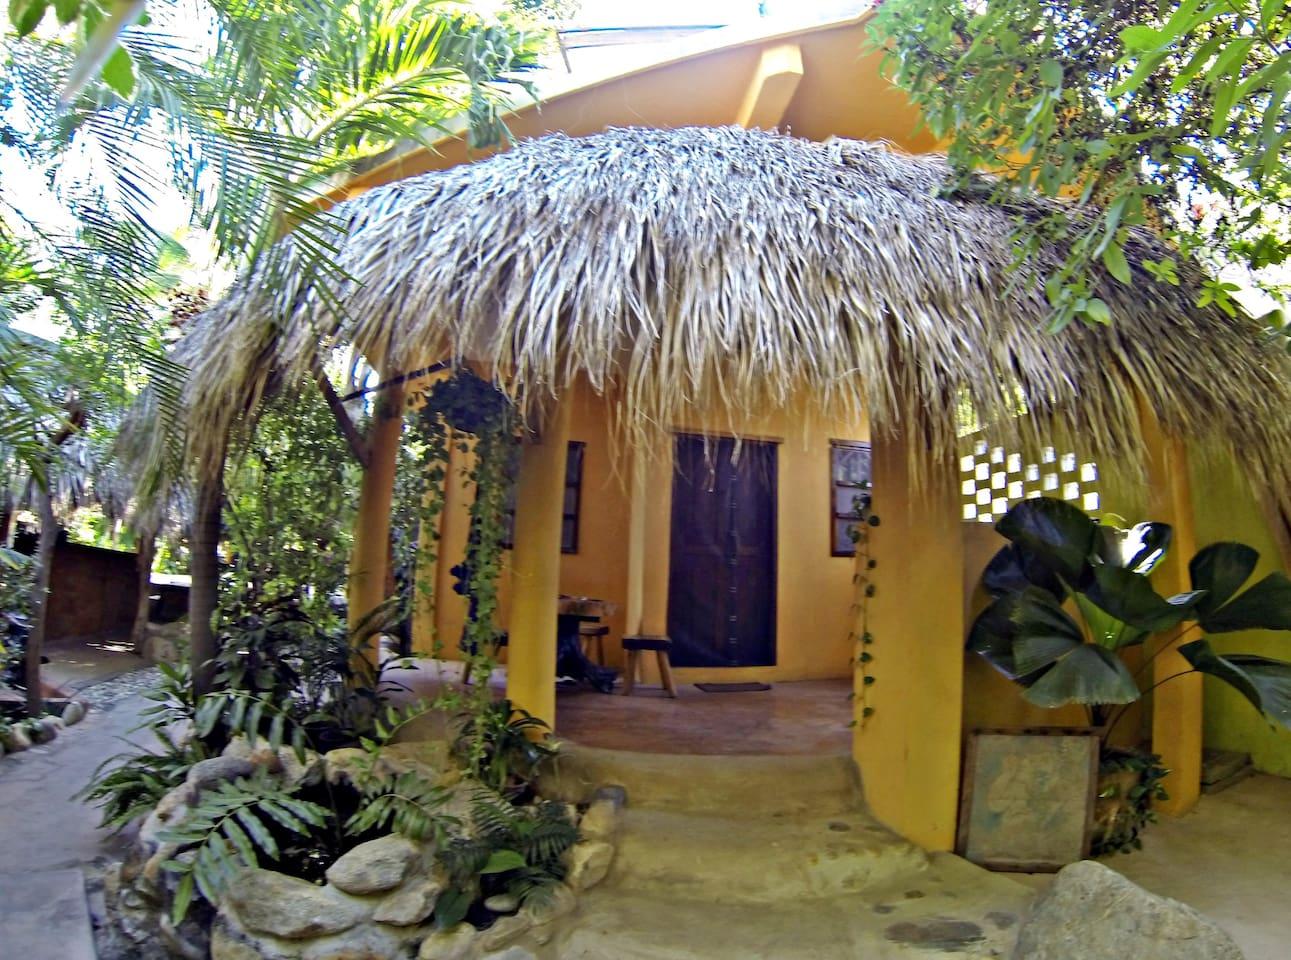 Airbnb is a great option for accommodations when you travel. Staying with a host means getting a more local experience and gaining some insight into the culture, and Airbnb is often cheaper than hotels, making it popular for budget travel. Plus, many properties are really unusual and interesting, like tipis, cabanas, treehouses, yurts, and more. Check out our list of 15 totally unique Airbnb rentals that are under $50.